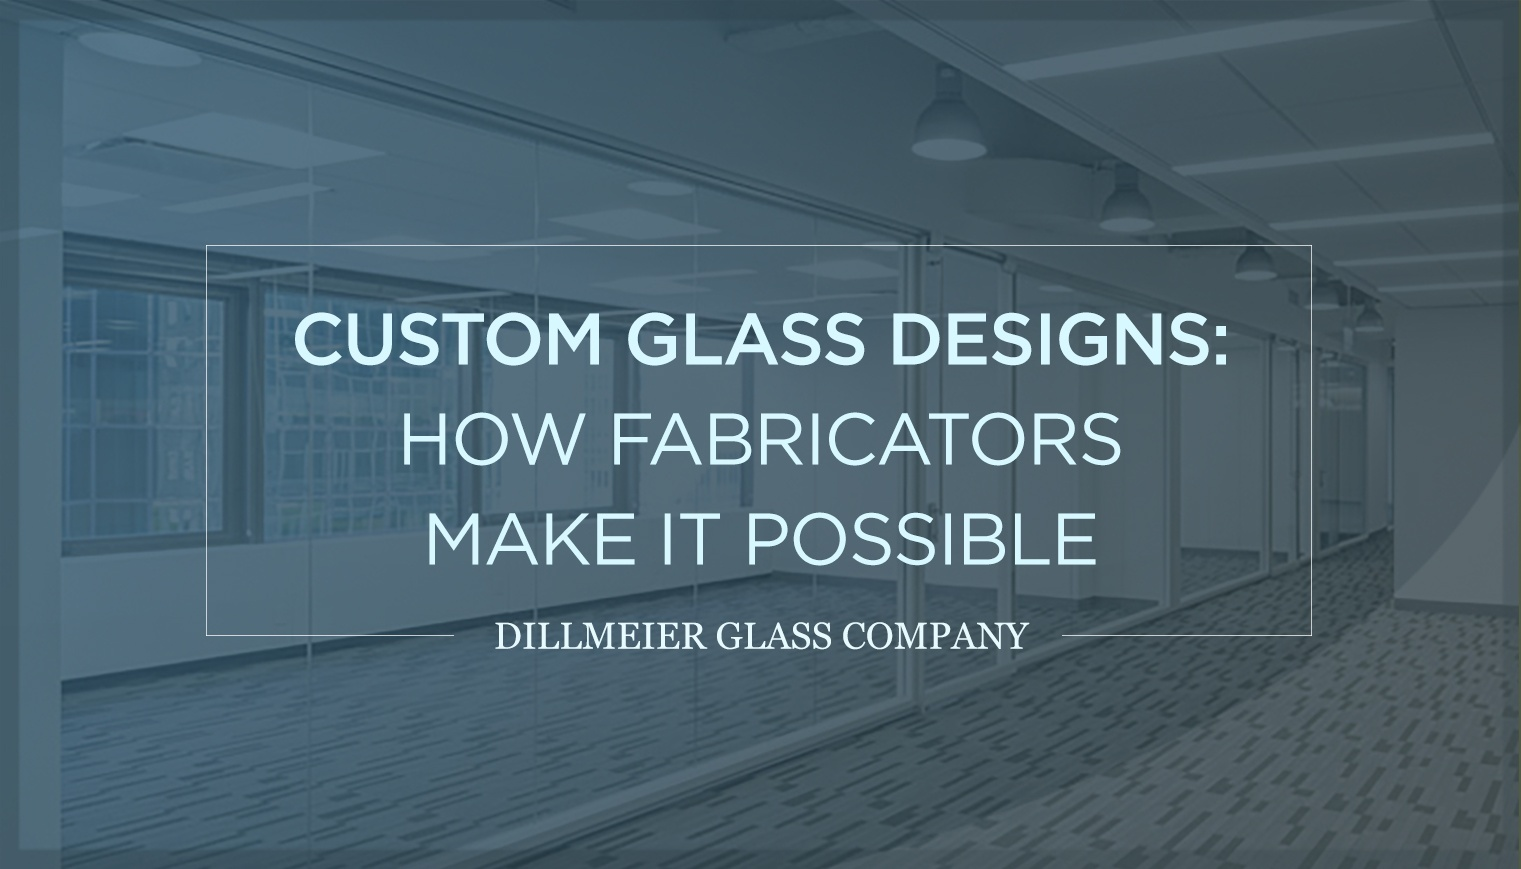 Custom Glass Designs: How Fabricators Make It Possible